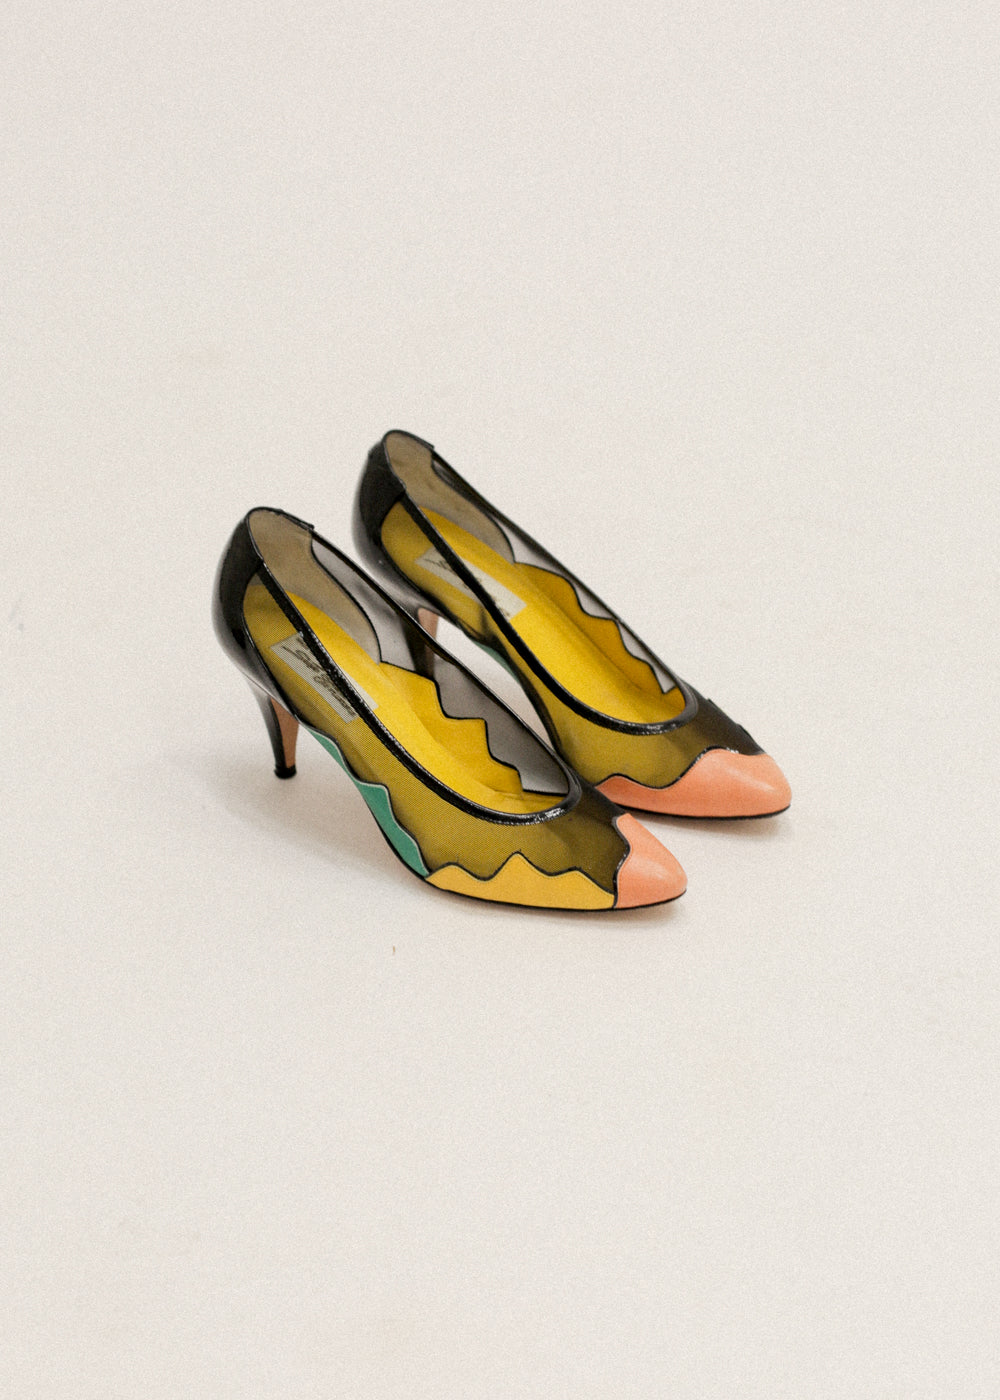 Vintage Mesh/Colourblocked Pumps